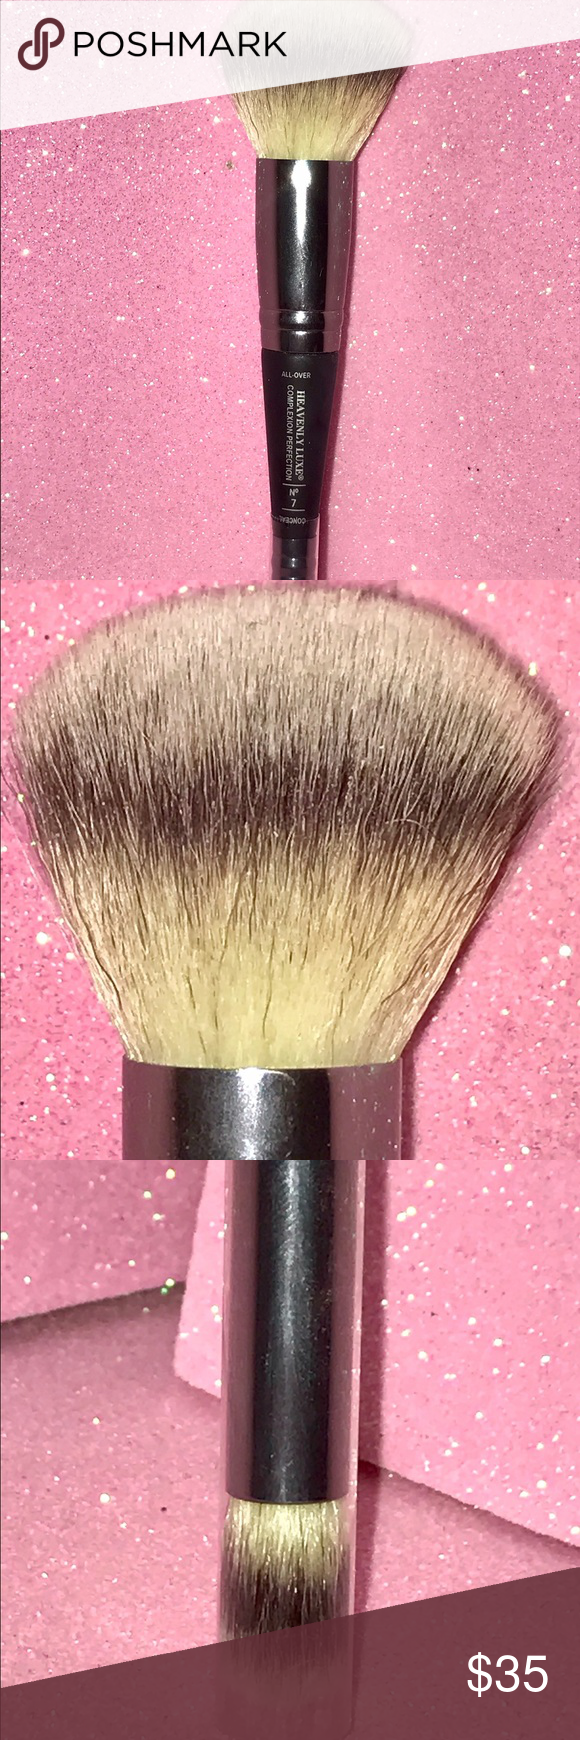 It Cosmetics Complexion Perfection Makeup Brush 7